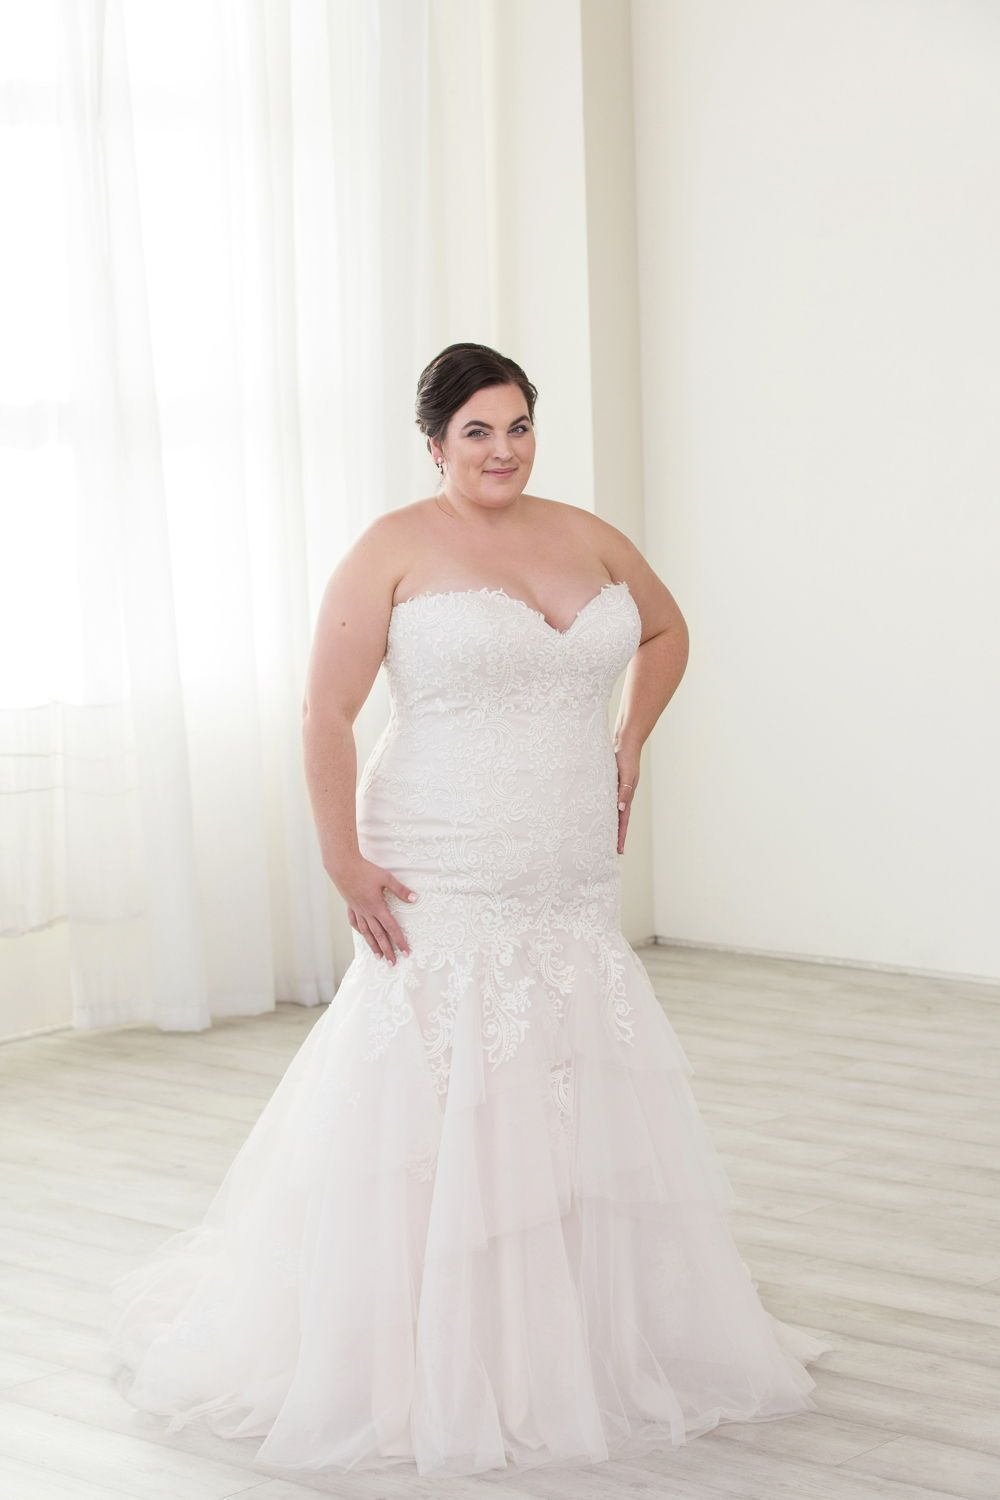 bd154feb7e4a Strapless mermaid plus size wedding dress. Plus size bridal in Portland,  OR. Lace fit and flare wedding dress.